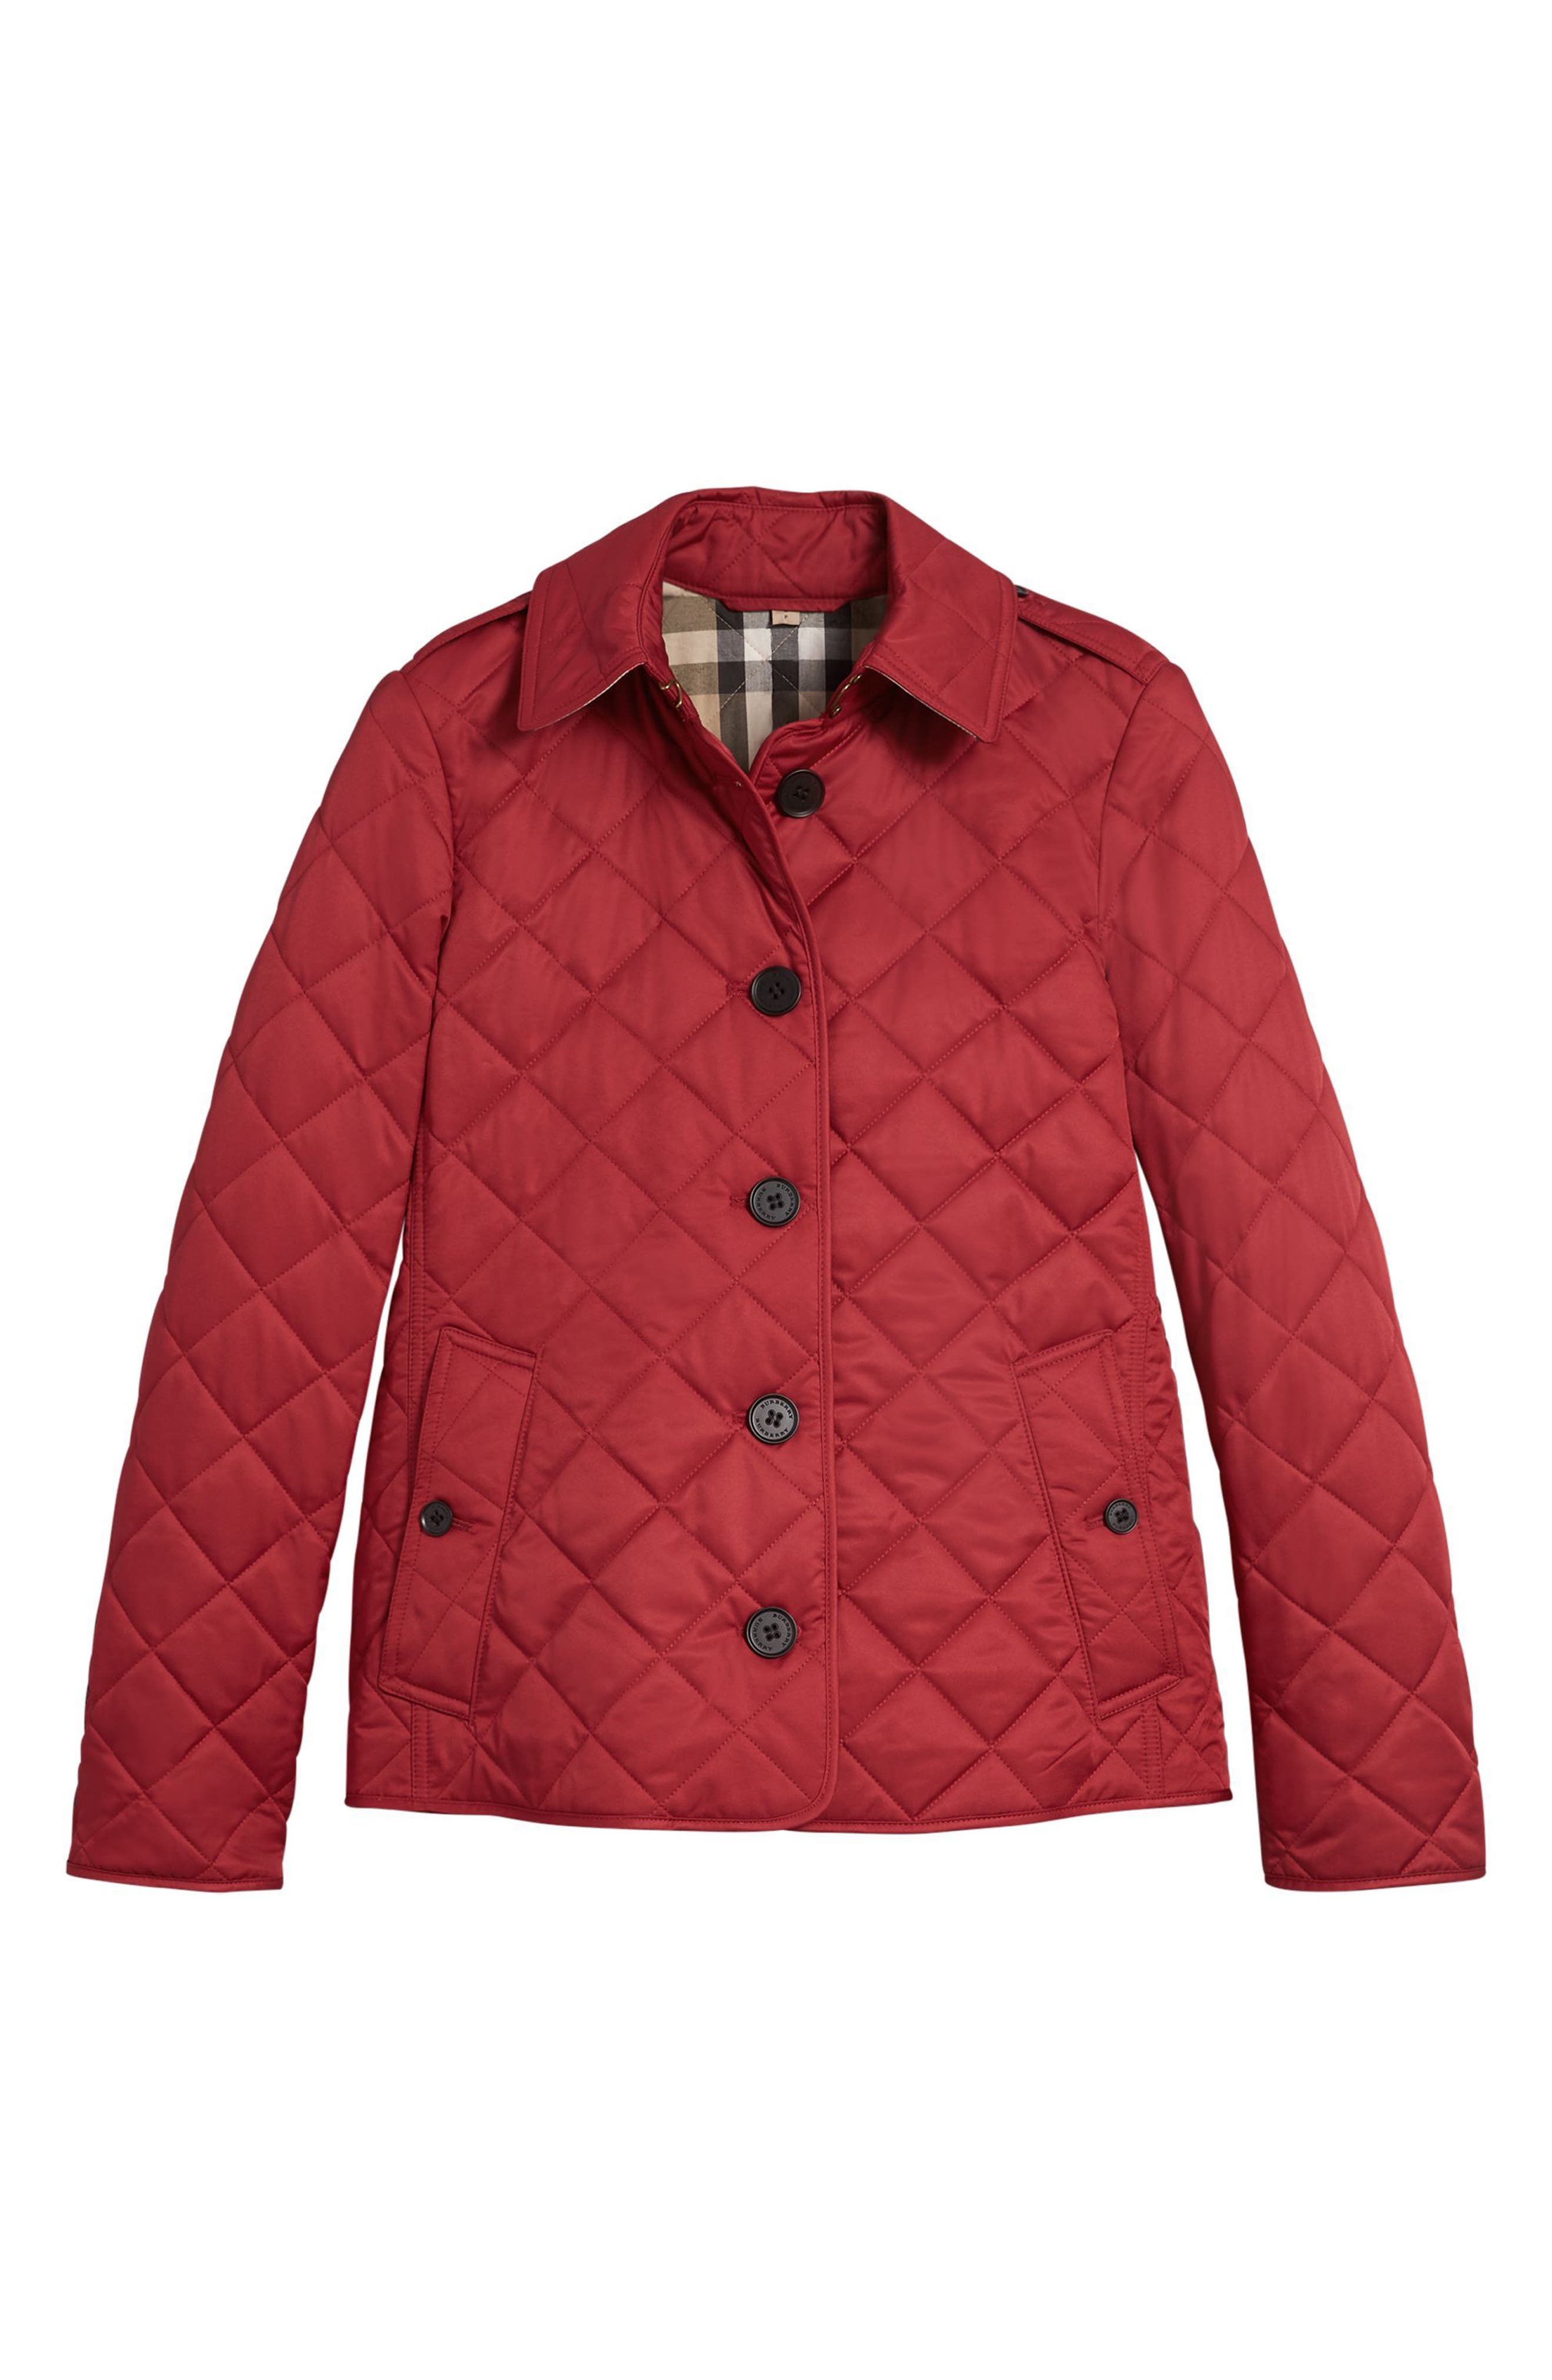 Frankby Quilted Jacket,                             Alternate thumbnail 5, color,                             PARADE RED